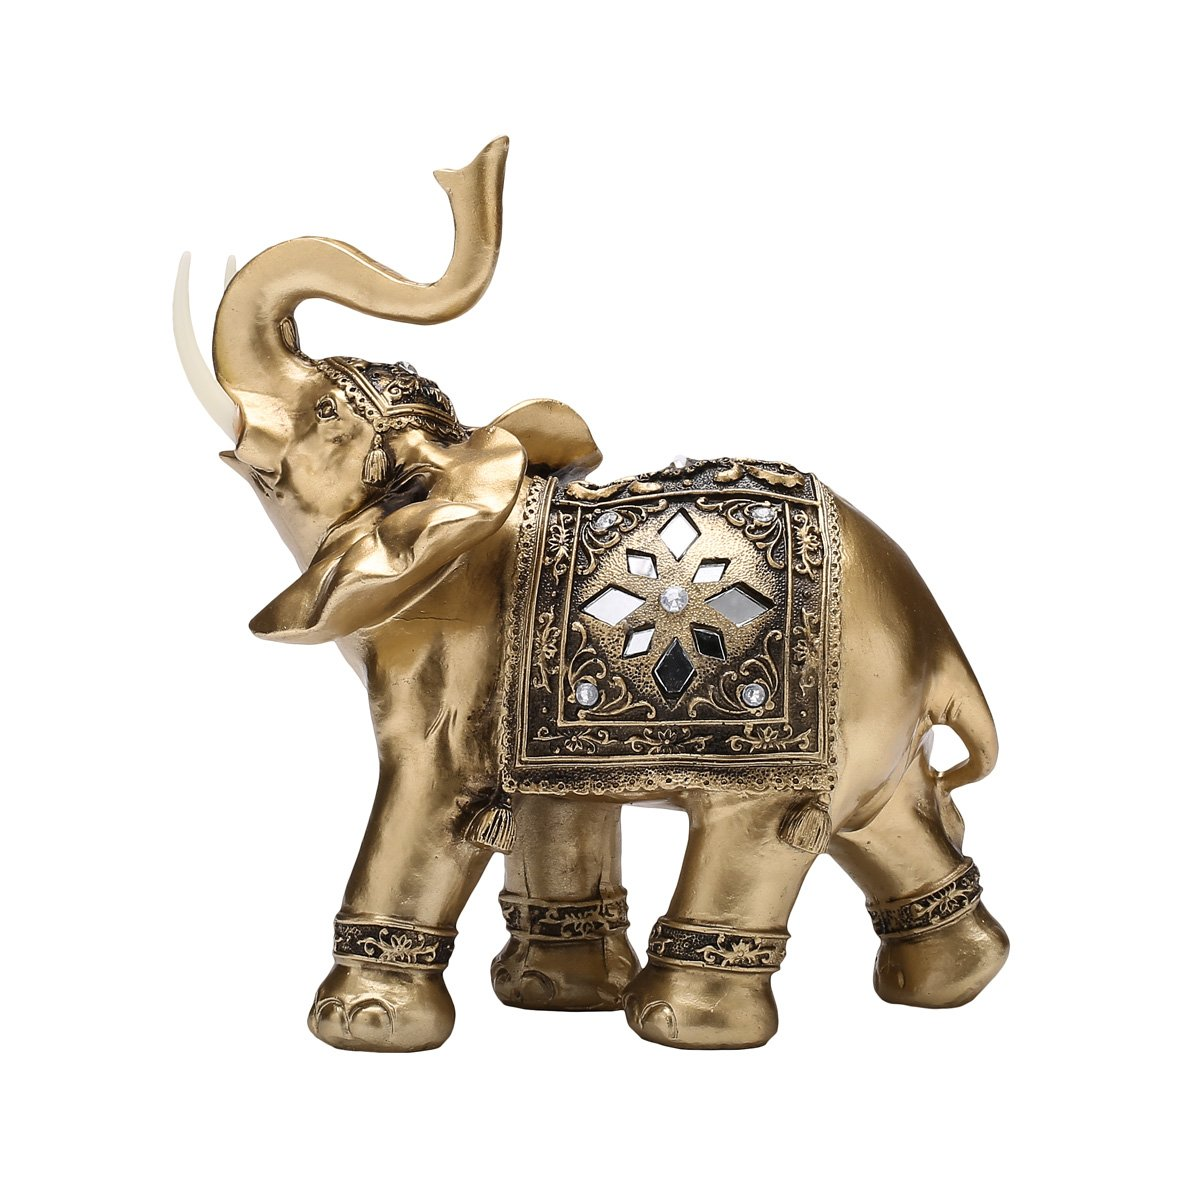 TOUCH MISS Golden Thai Elephant With Trunk Raised Collectible Figurines (Large)